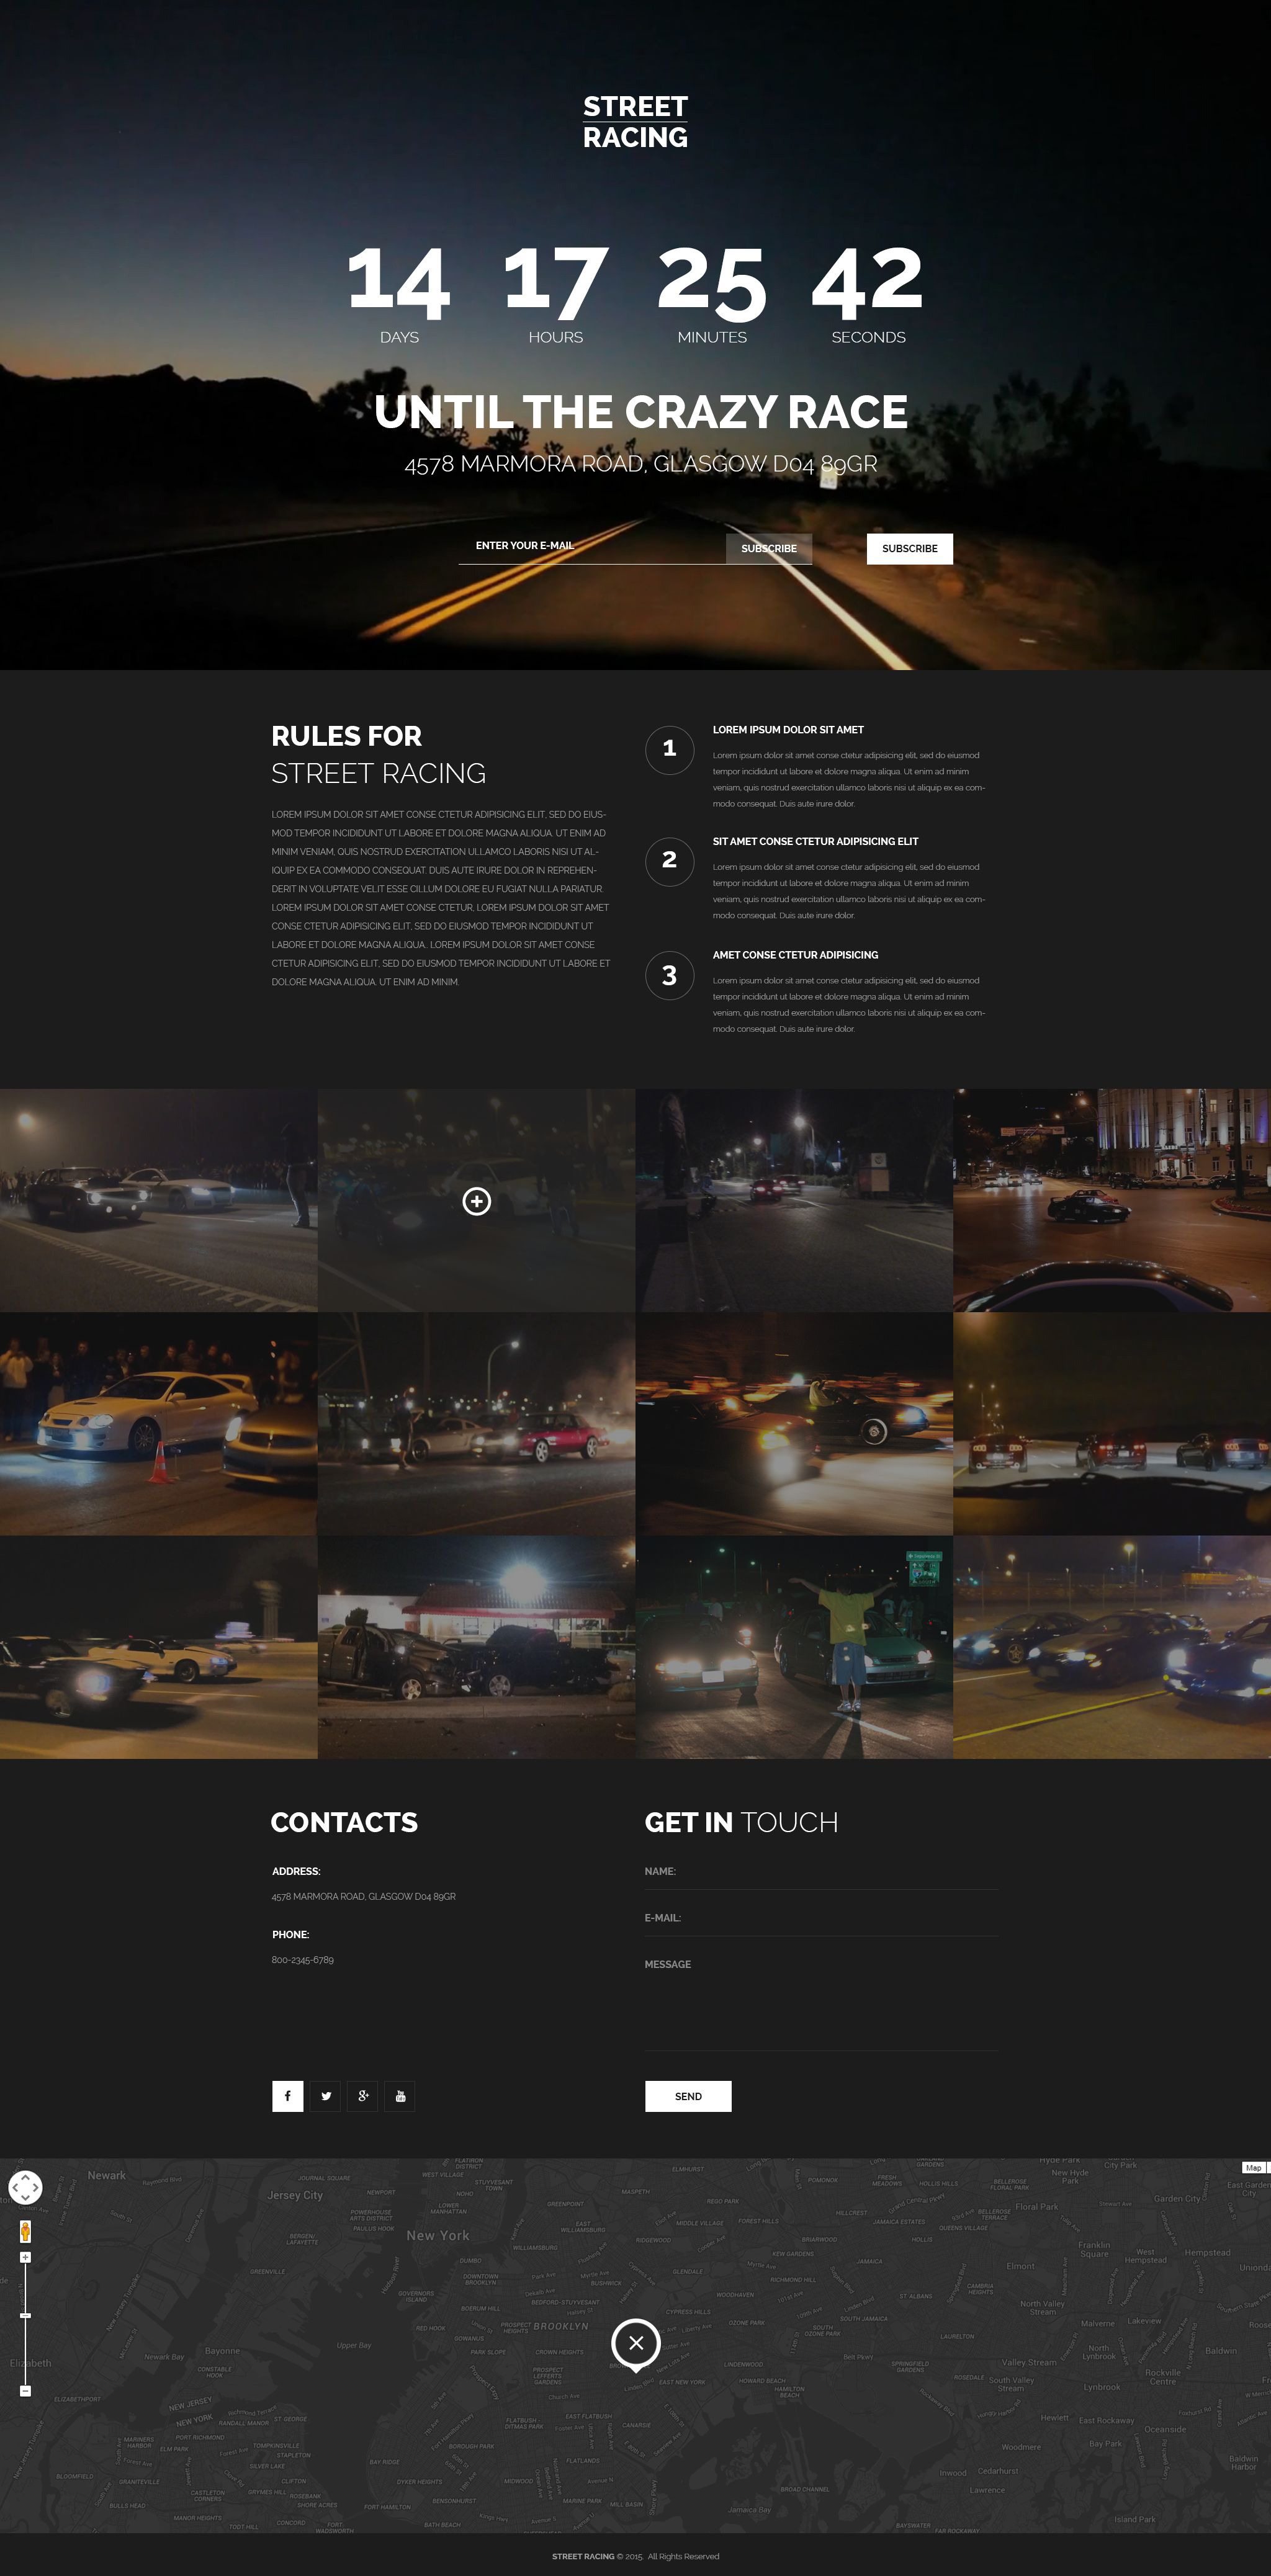 The Street Racer Landing Page Template Design 53924, one of the best Landing Page templates of its kind (cars, most popular), also known as street racer Landing Page template, car Landing Page template, cars Landing Page template, gallery Landing Page template, forum Landing Page template, members Landing Page template, membership Landing Page template, spares club Landing Page template, auto Landing Page template, improvement Landing Page template, motor Landing Page template, driving Landing Page template, off-road Landing Page template, racing Landing Page template, driver Landing Page template, track Landing Page template, race Landing Page template, urban Landing Page template, freeway Landing Page template, highway Landing Page template, road Landing Page template, black forum Landing Page template, mail Landing Page template, us Landing Page template, about Landing Page template, the club Landing Page template, news Landing Page template, latest video Landing Page template, top 10 Landing Page template, racing Landing Page template, quality Landing Page template, yellow Landing Page template, car Landing Page template, lights and related with street racer, car, cars, gallery, forum, members, membership, spares club, auto, improvement, motor, driving, off-road, racing, driver, track, race, urban, freeway, highway, road, black forum, mail, us, about, the club, news, latest video, top 10, racing, quality, yellow, car, lights, etc.